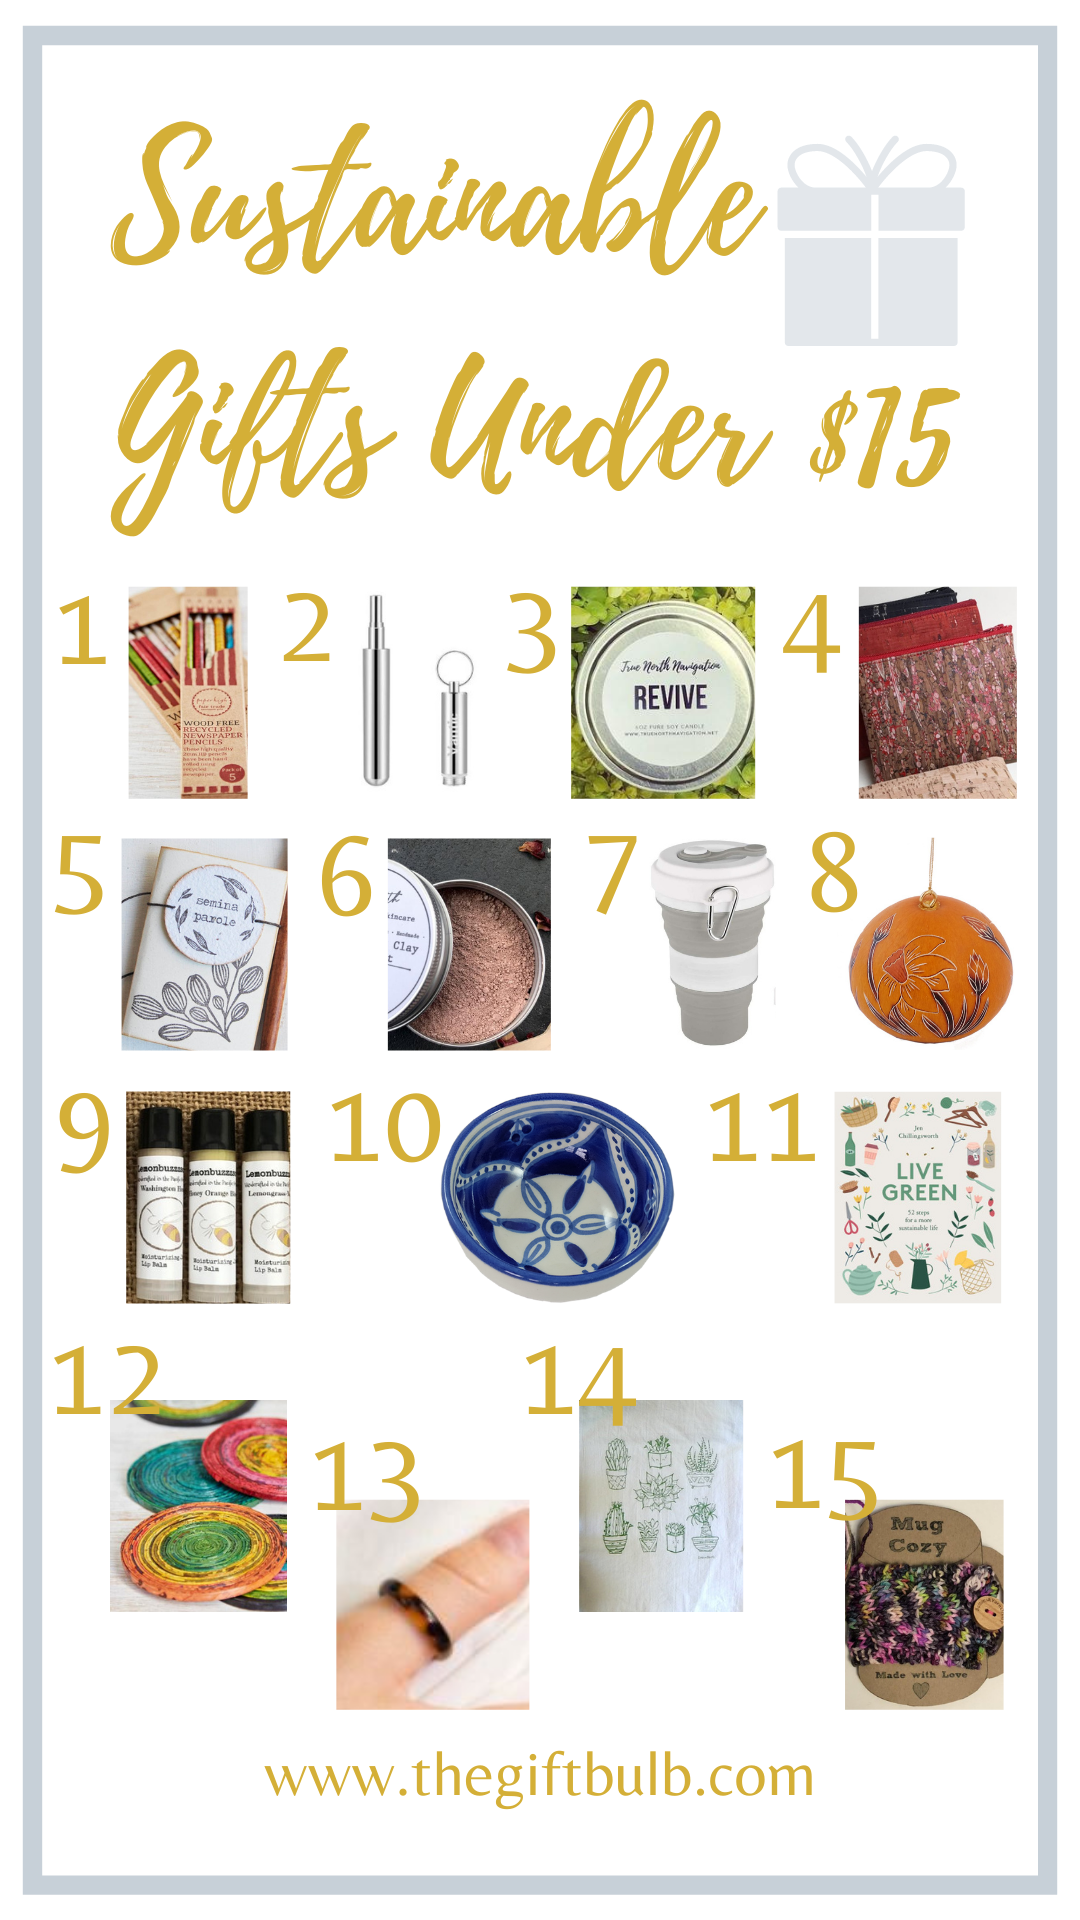 Sustainable Gifts Under $15